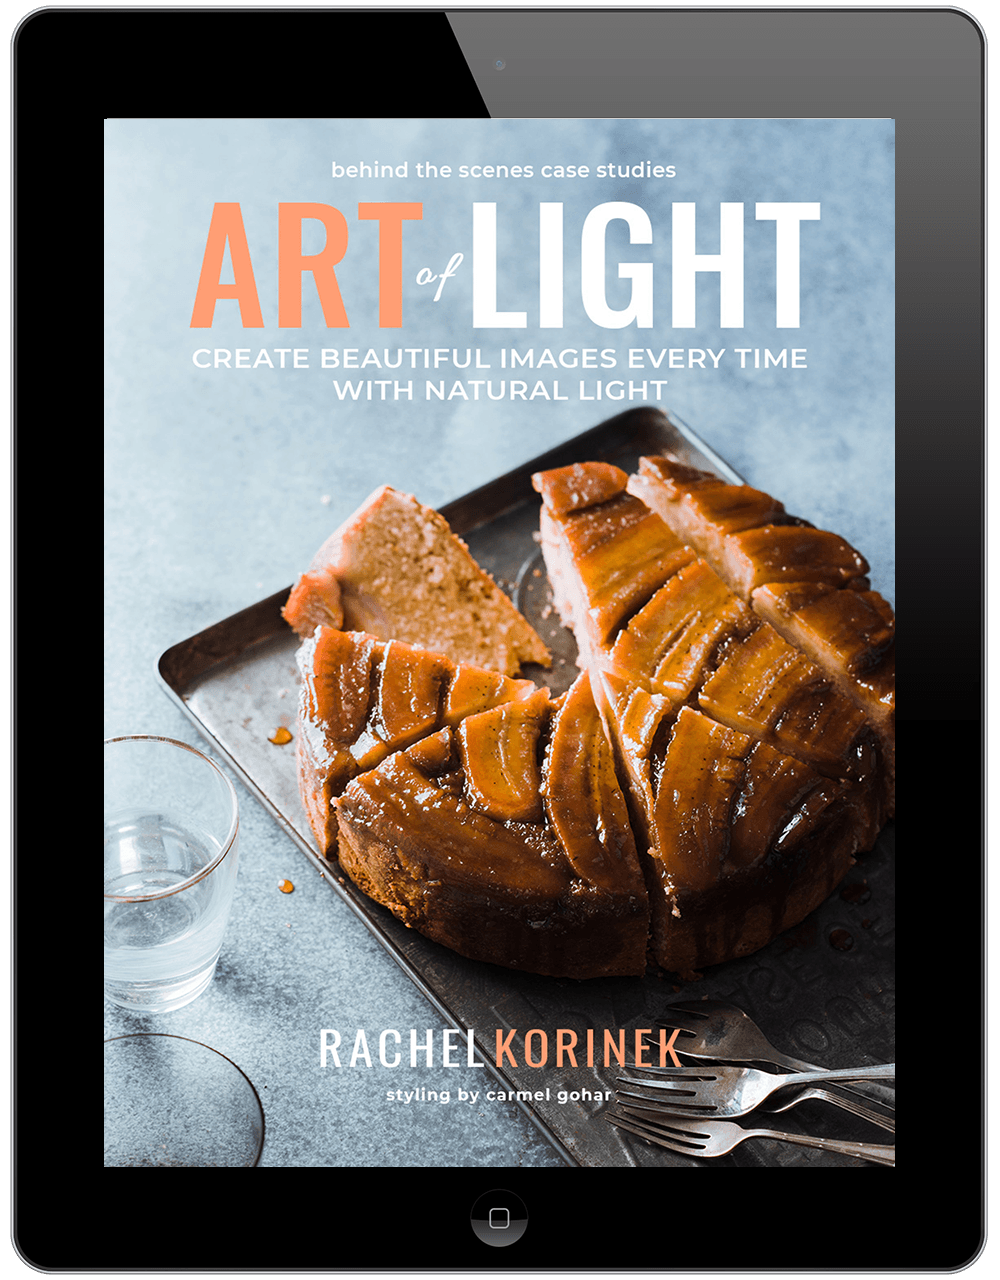 Learn Natural Light with Rachel Korinek. Art of Light.